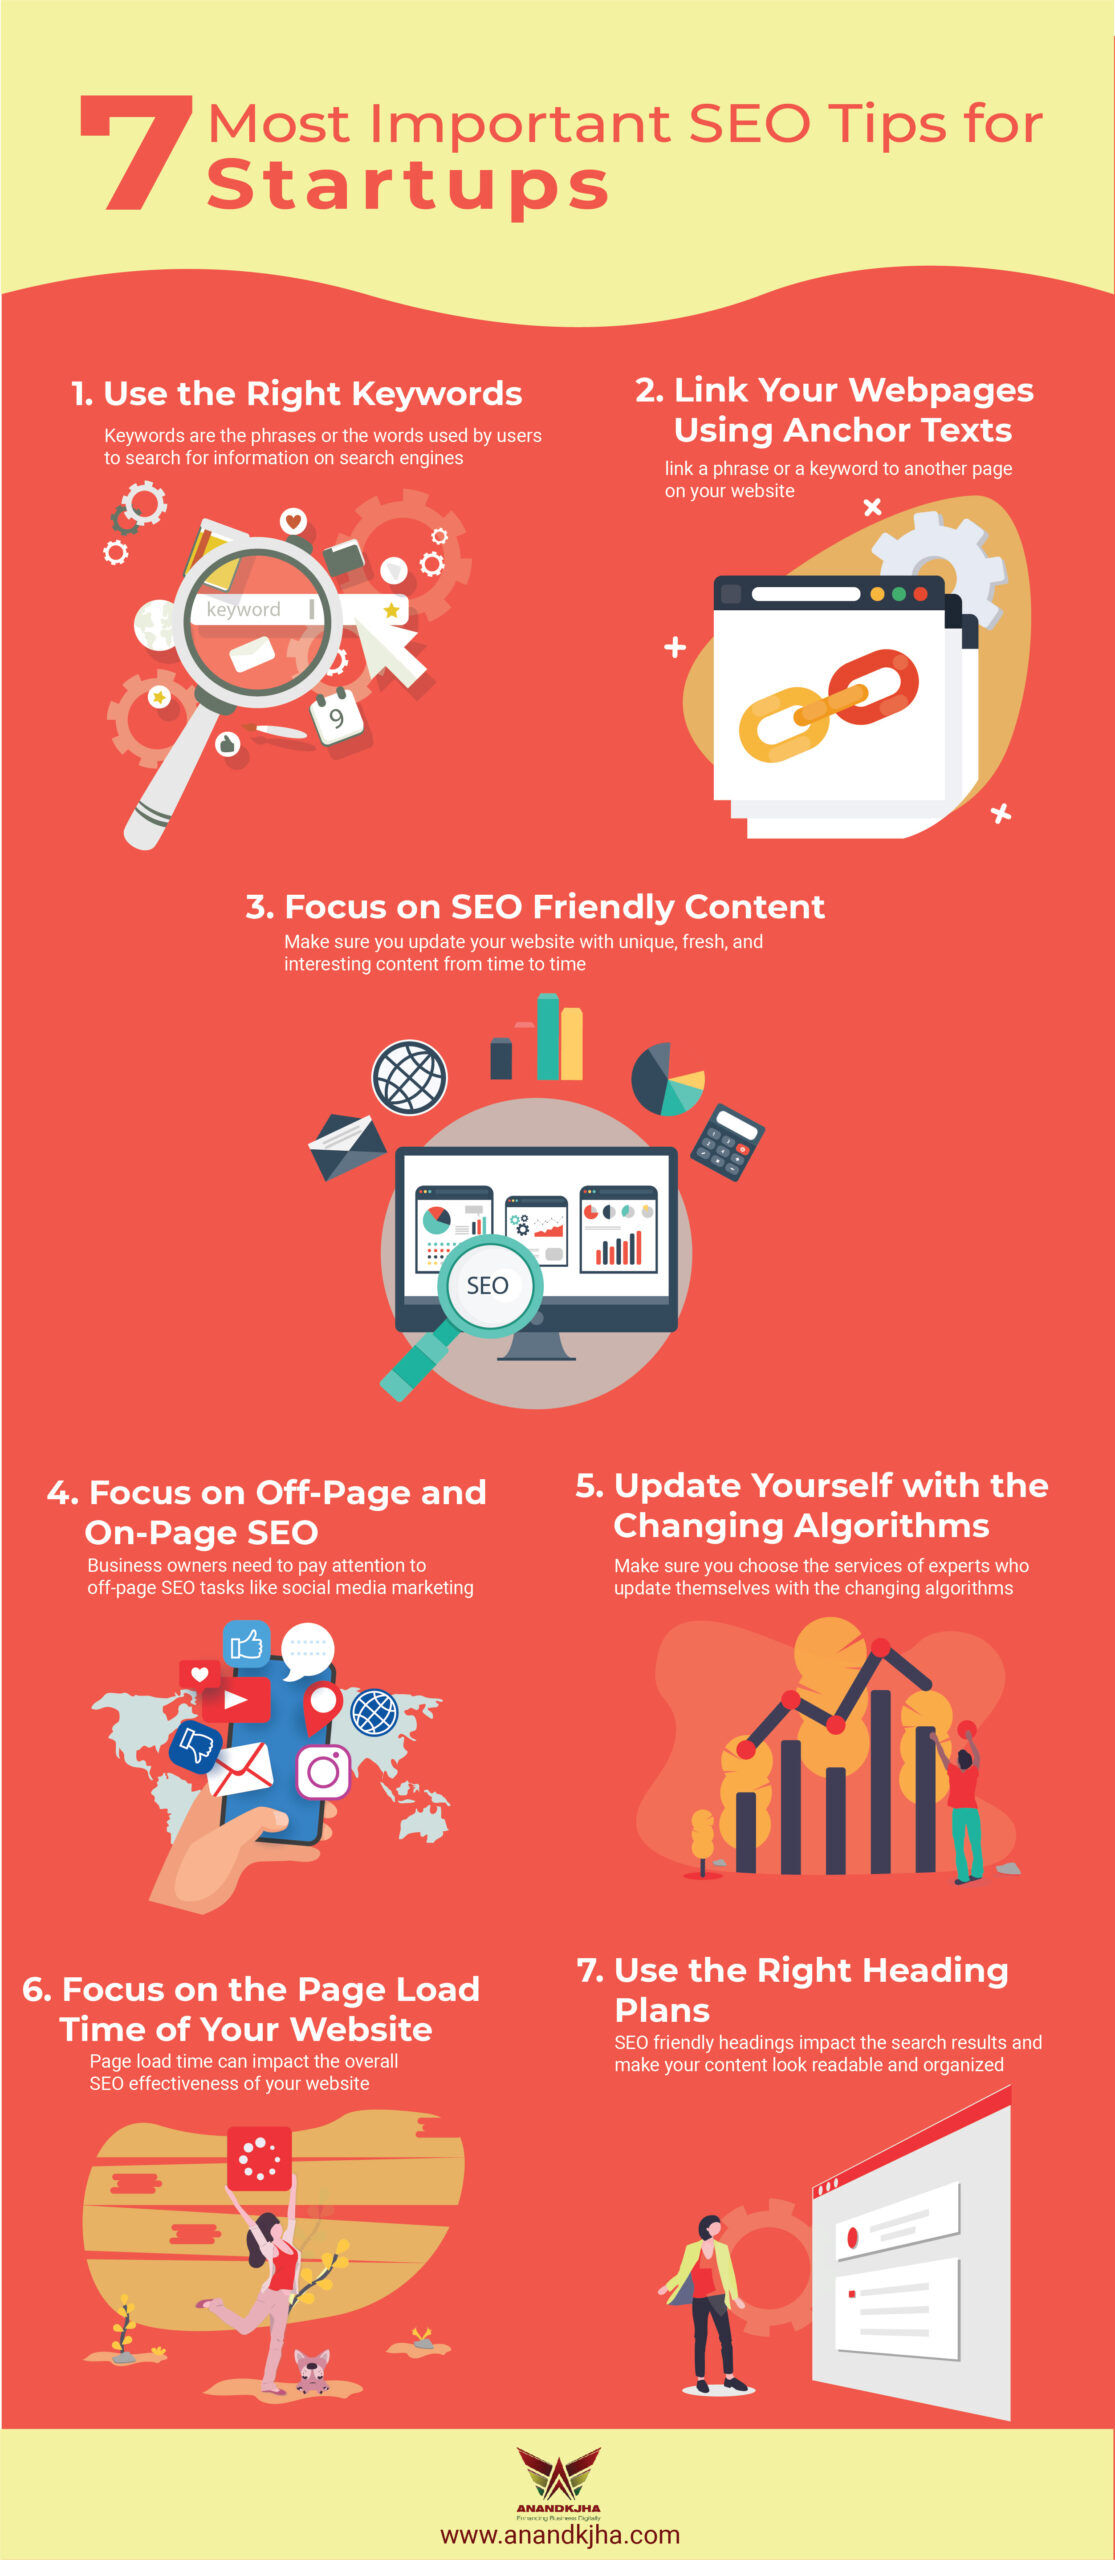 7 Evergreen SEO Tips for Startups with No SEO Experience and Skills